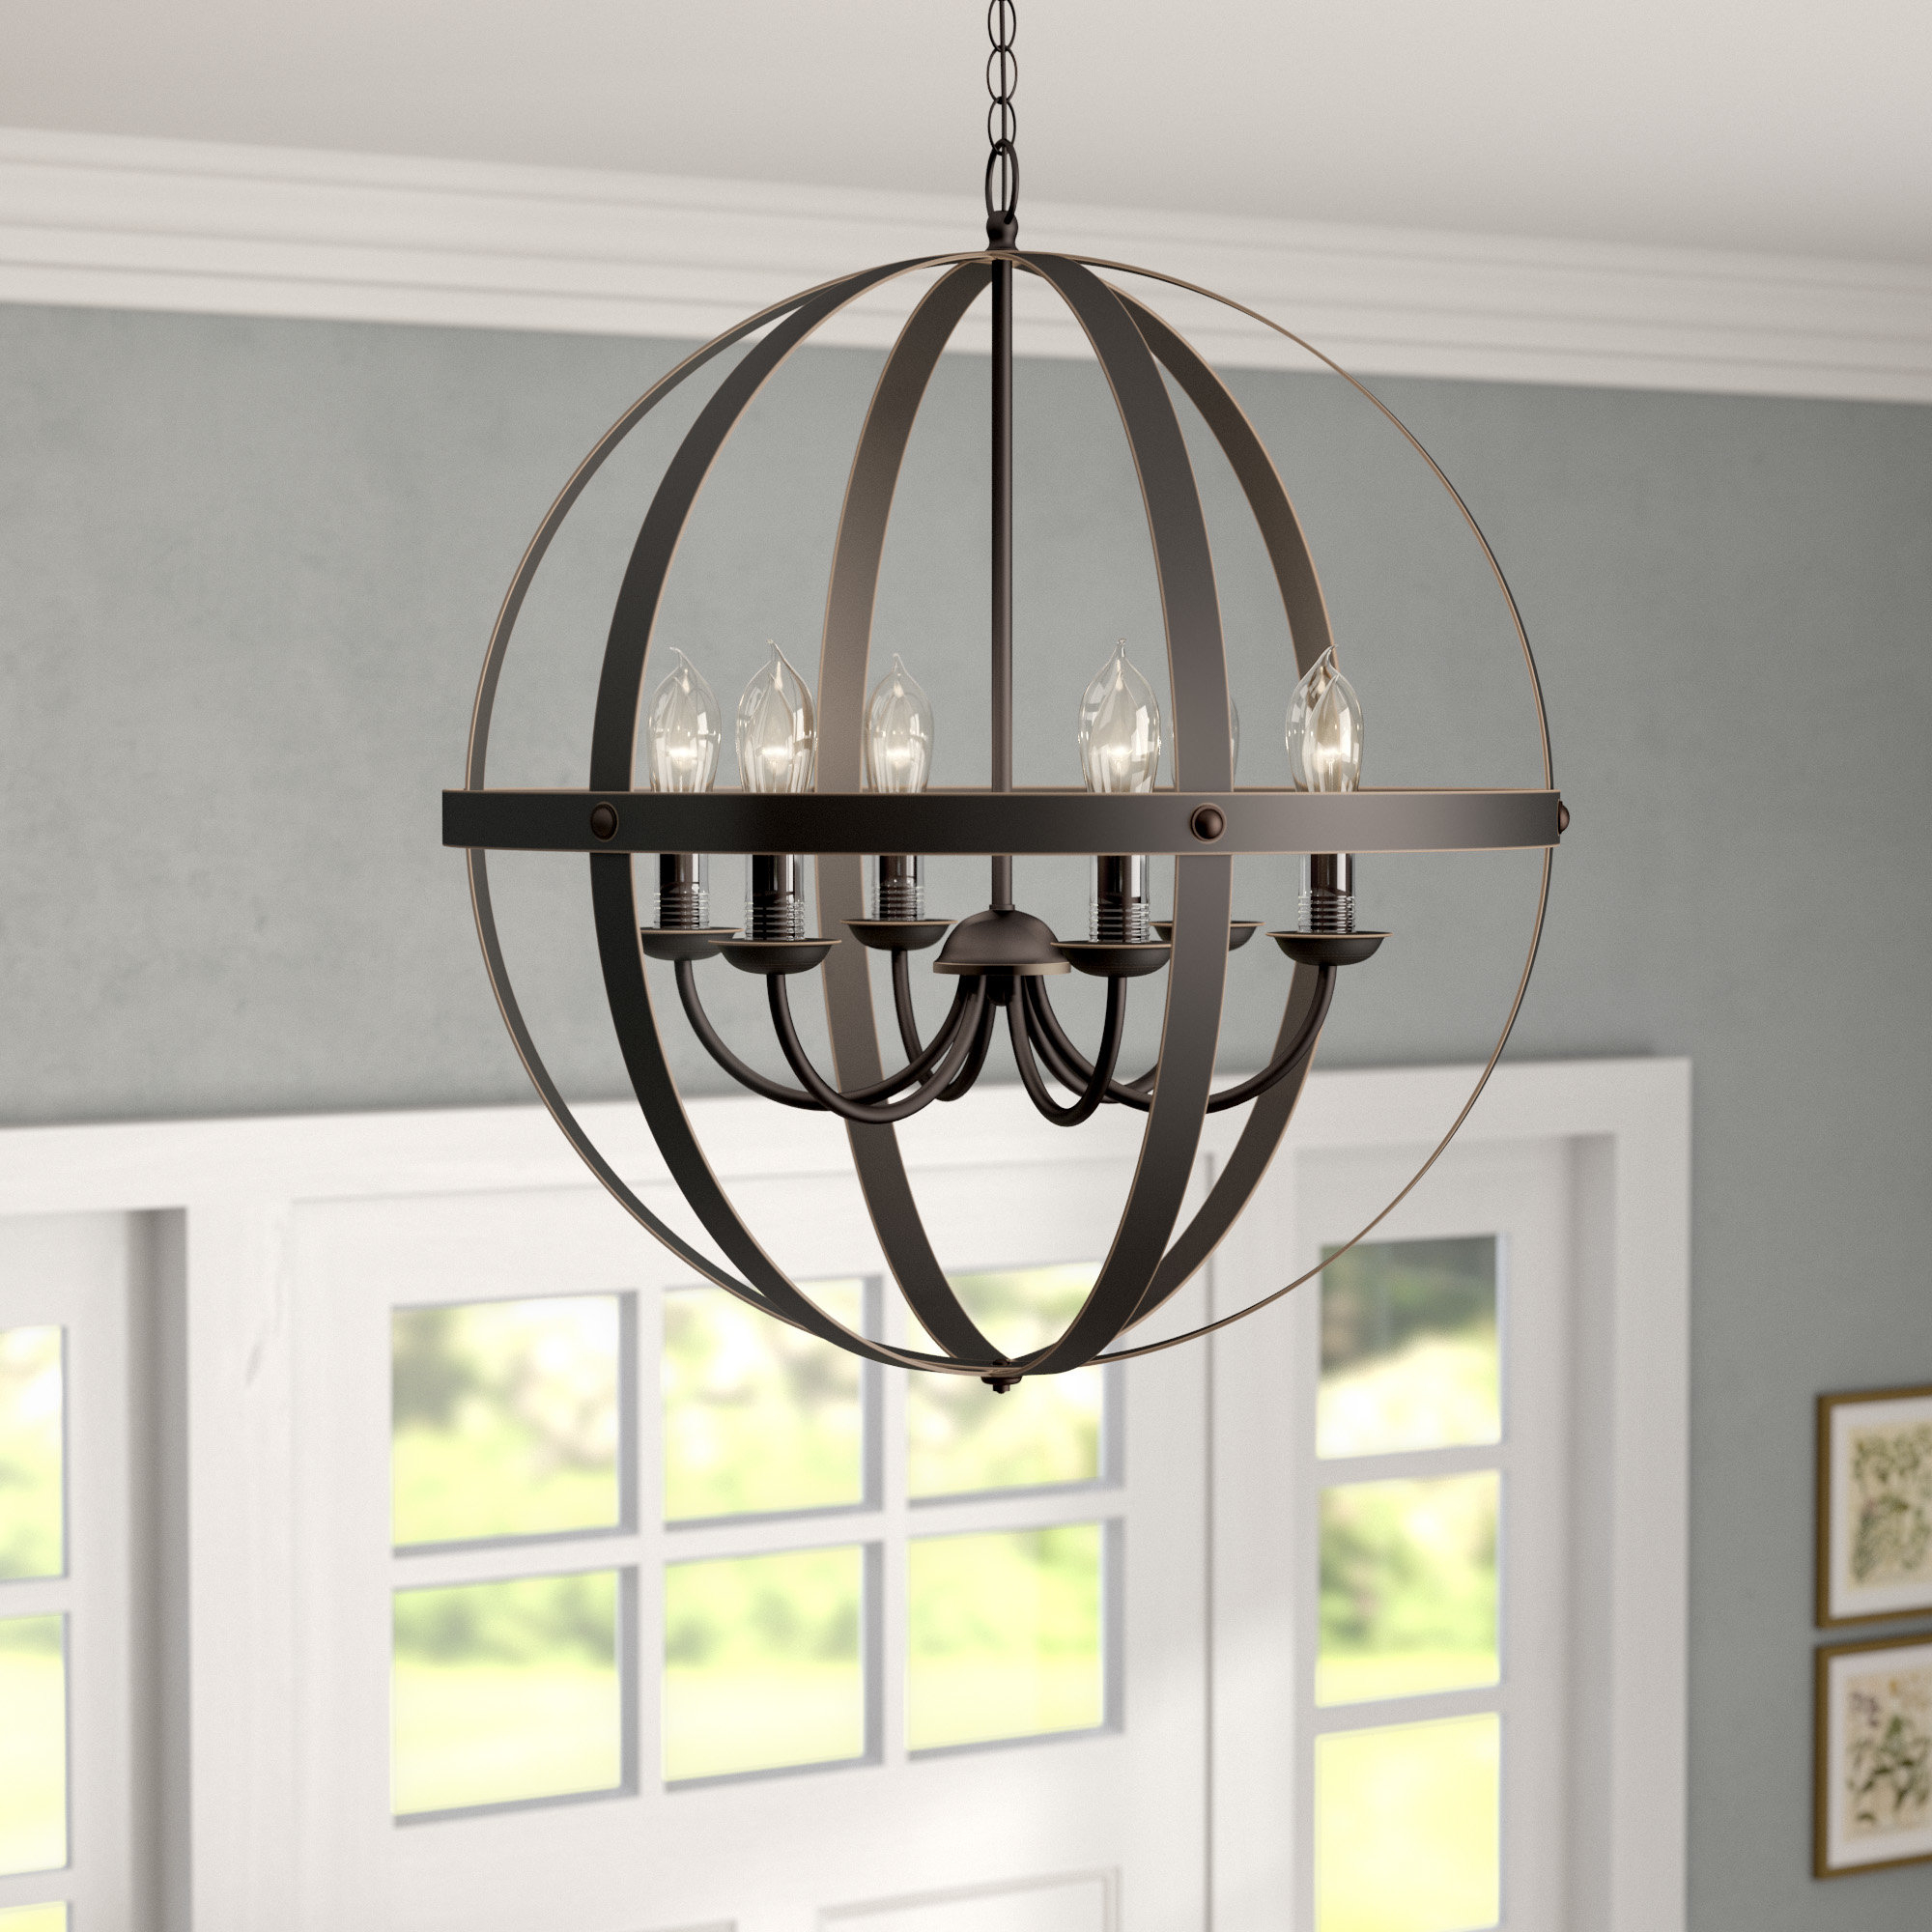 Genna 6 Light Globe Chandelier Intended For Well Known Donna 6 Light Globe Chandeliers (View 8 of 20)